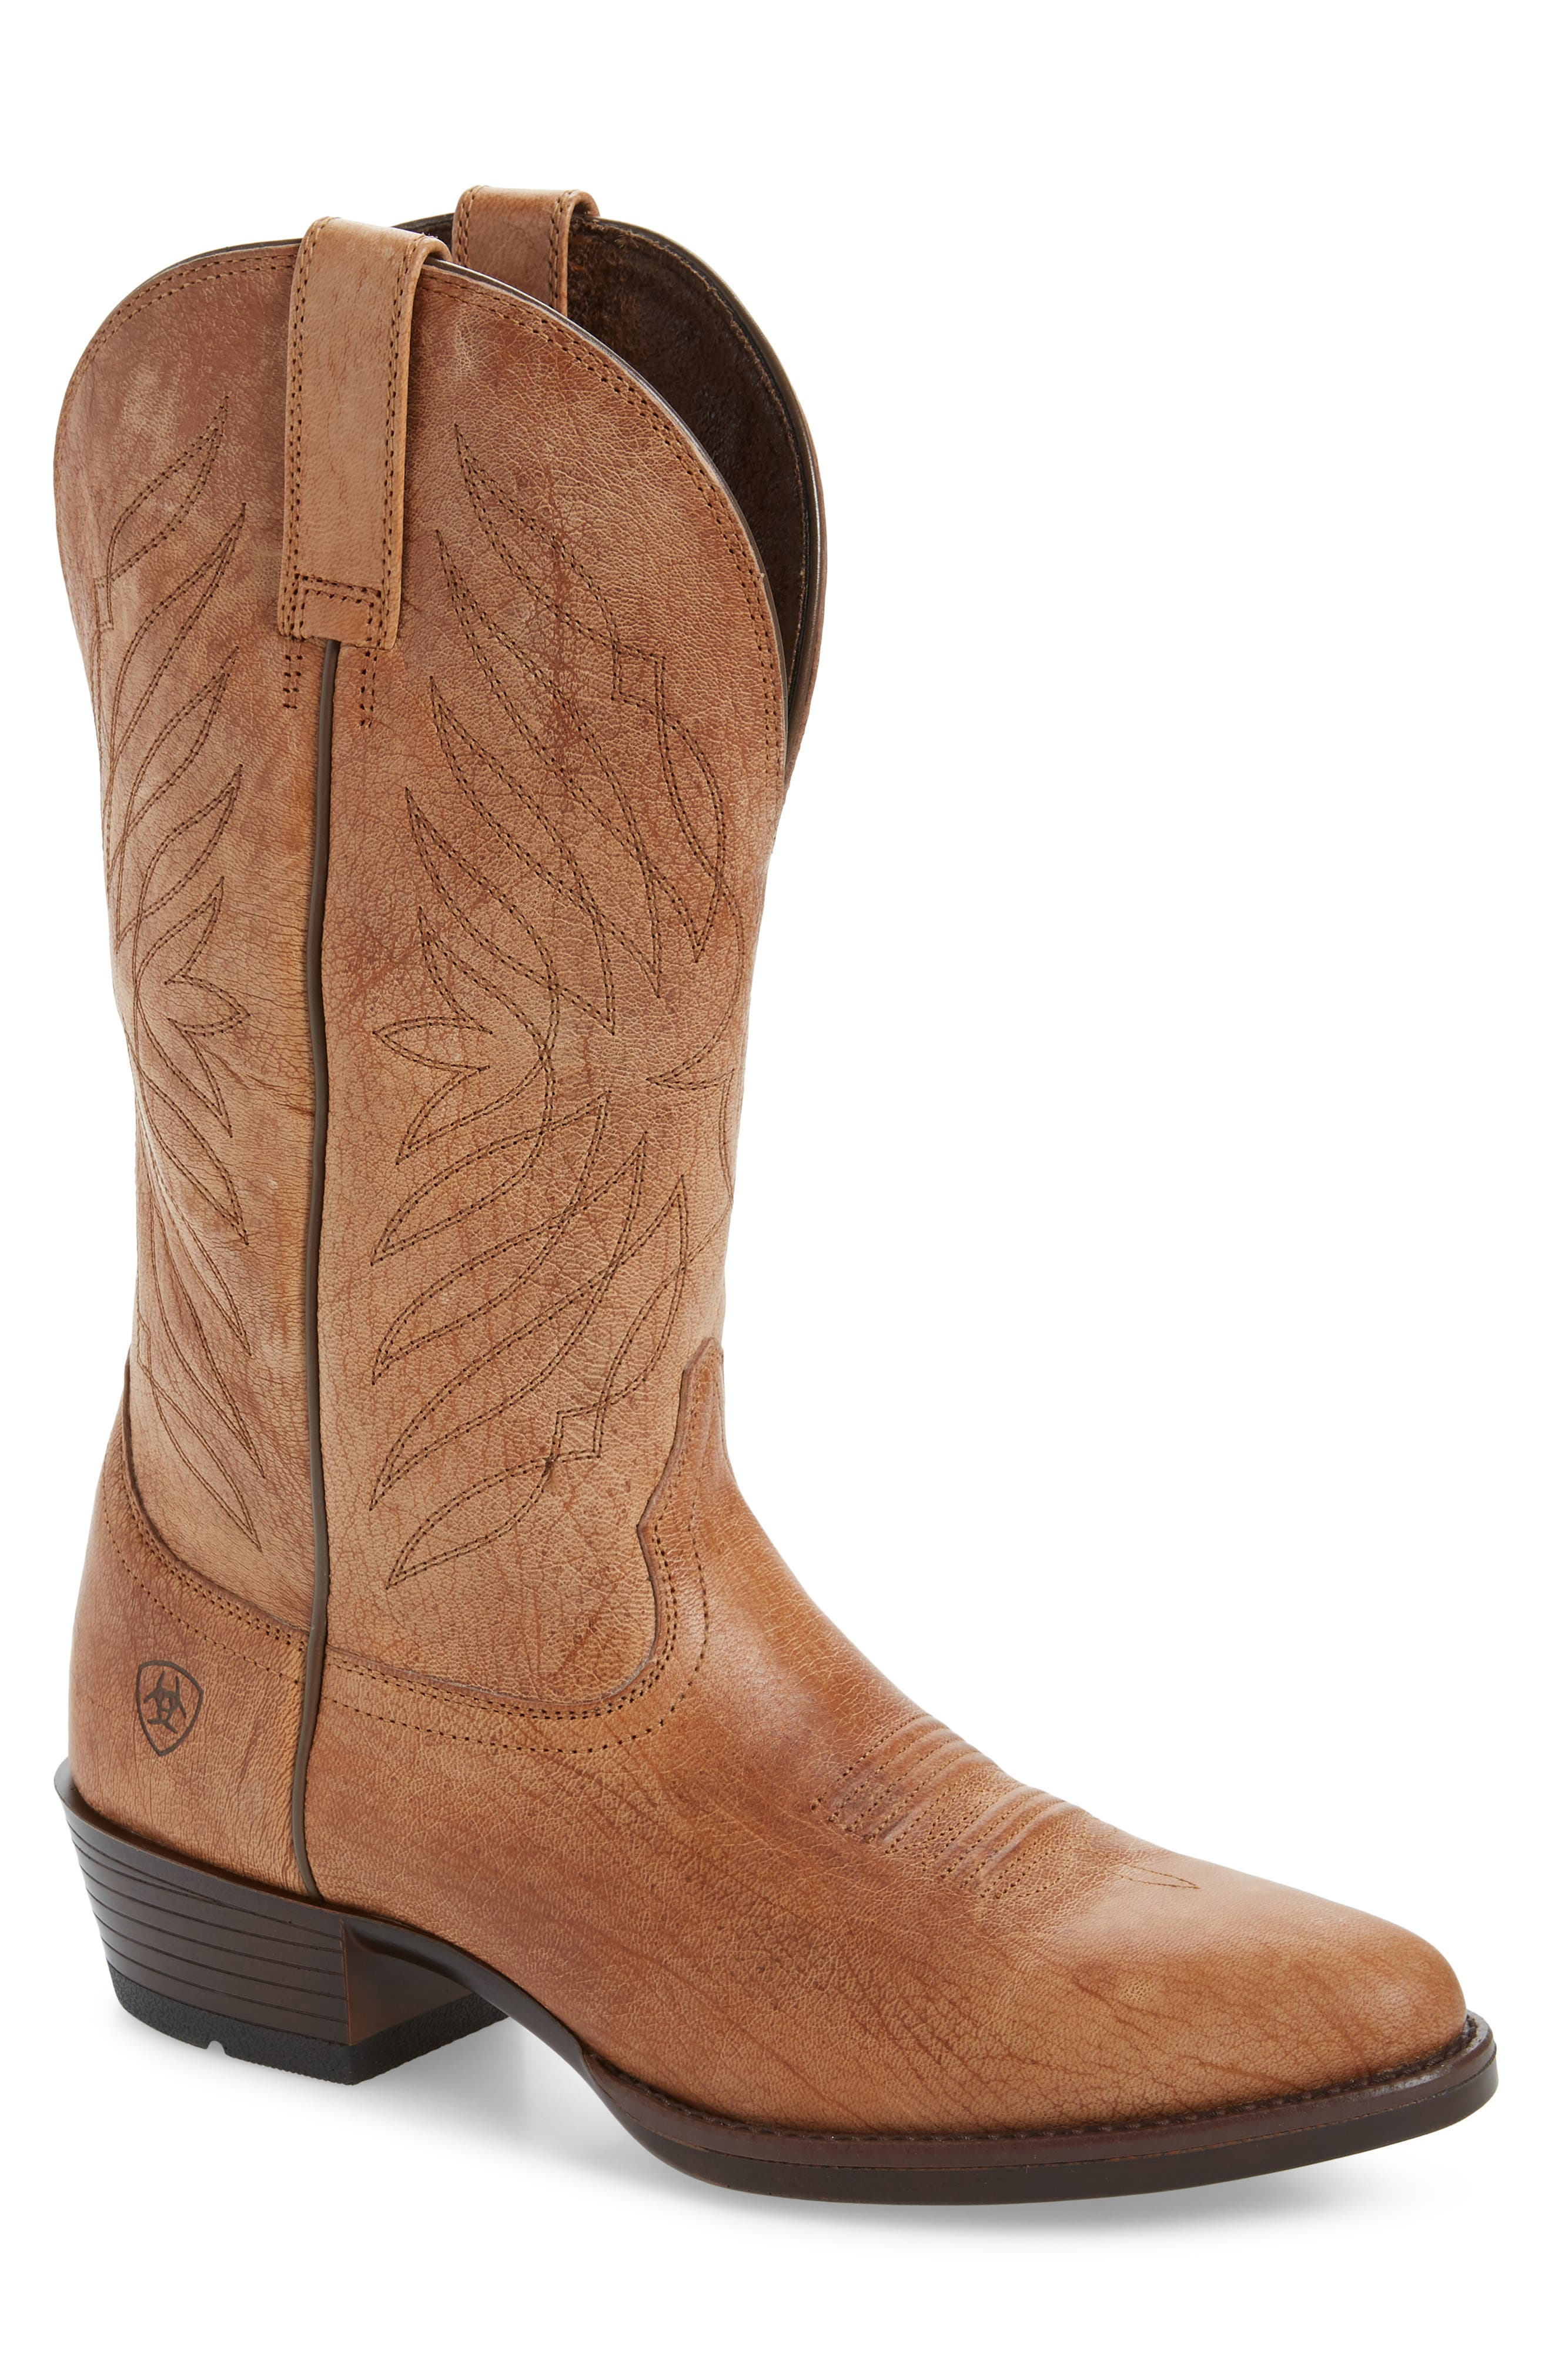 Ariat Uptown Ultra Cowboy Boot, Brown